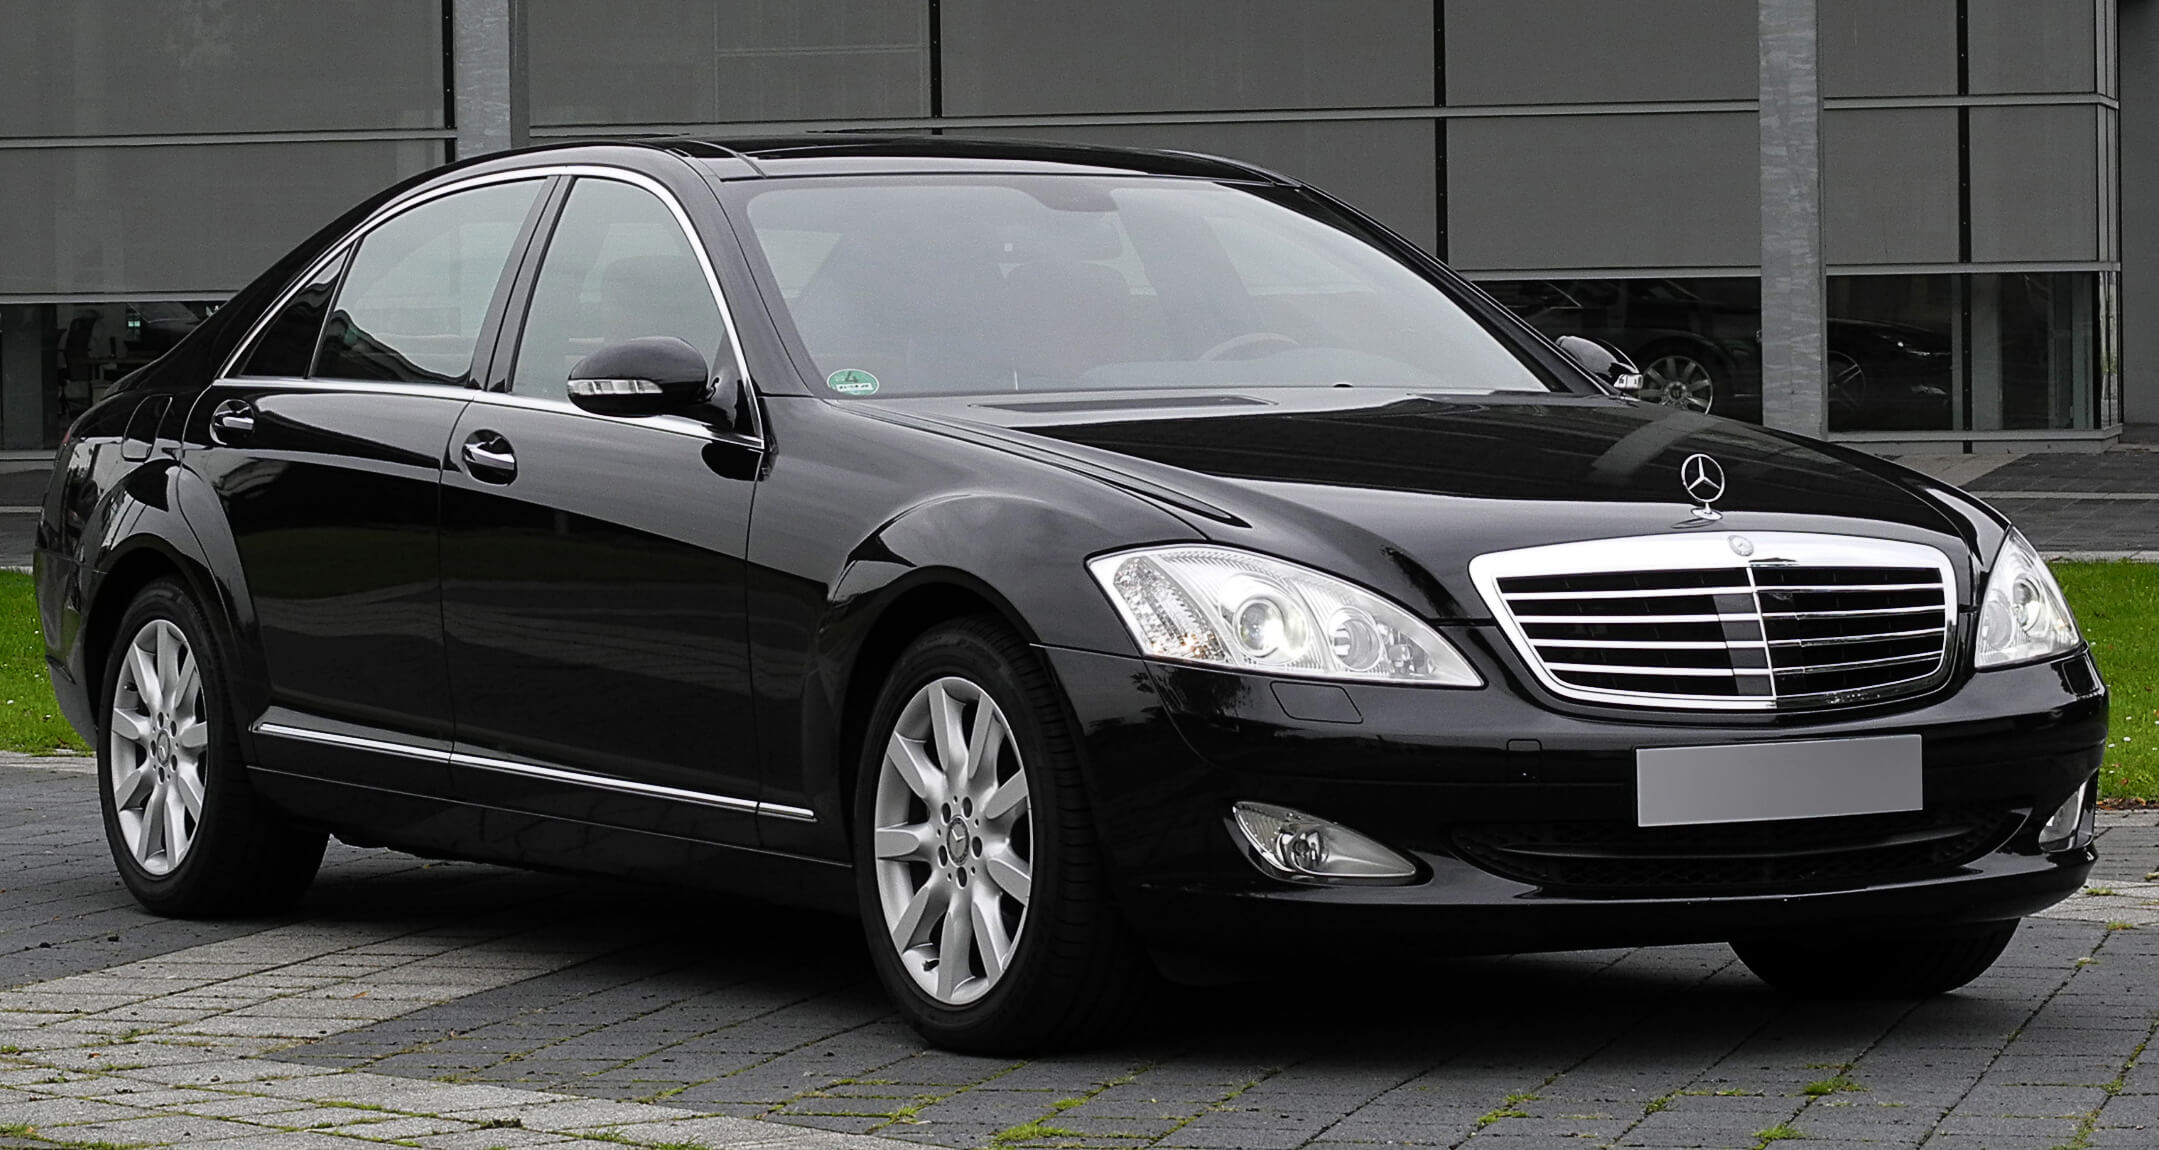 Common Problems W221 S Class - Mercedes Enthusiasts